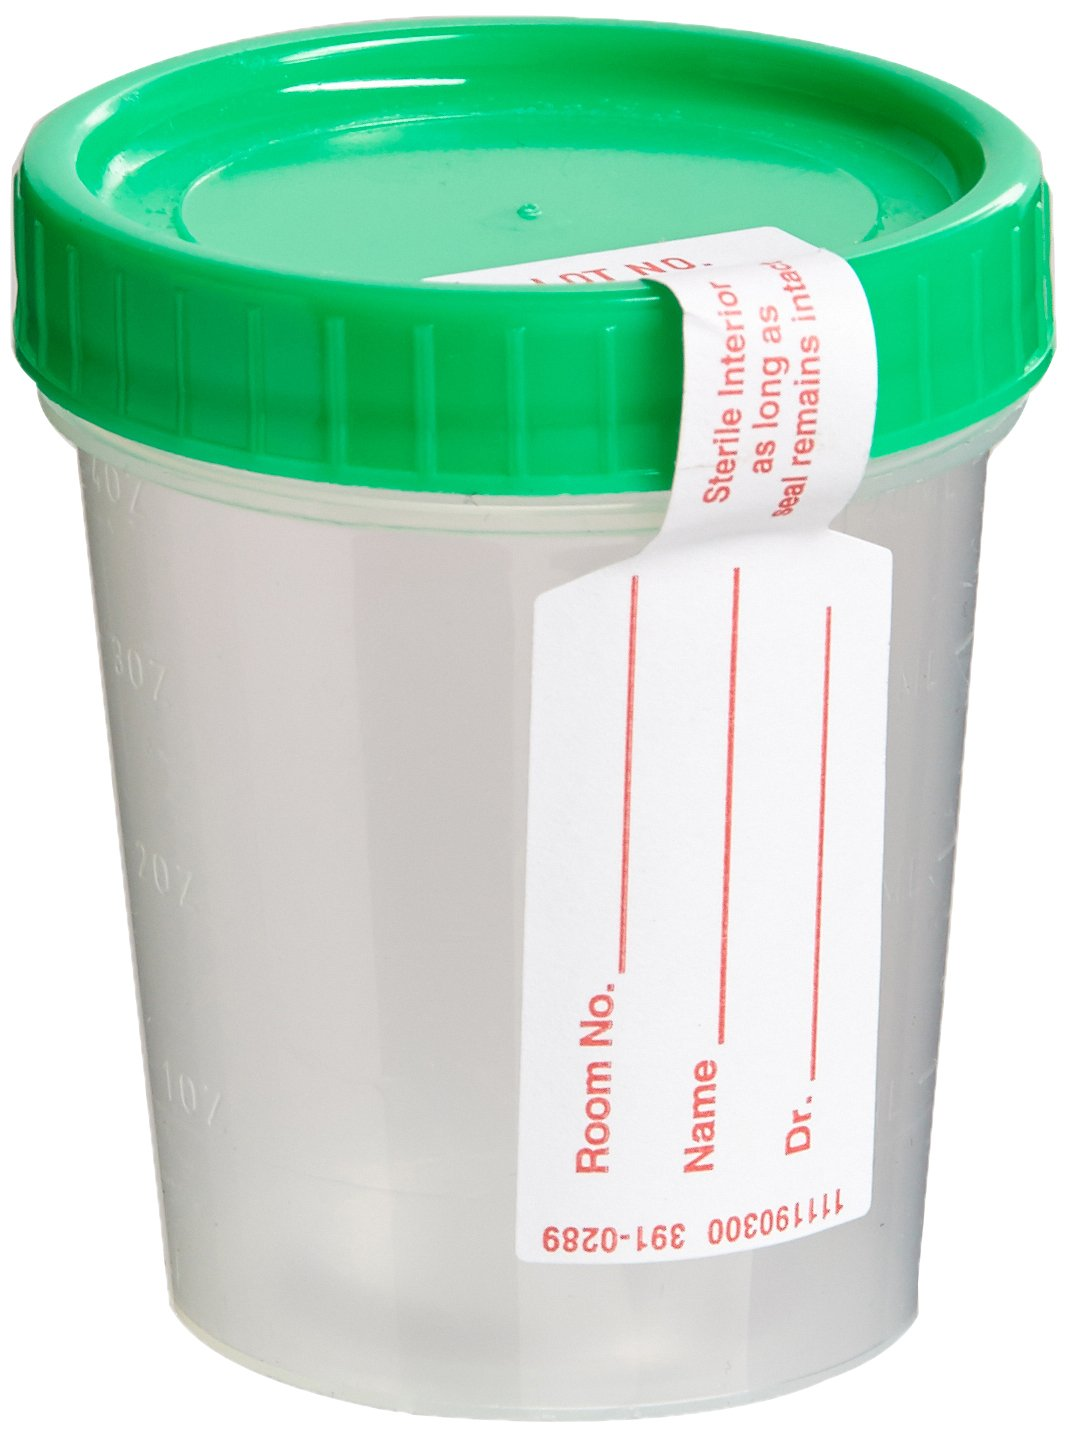 Covidien 8889207067 Cap, Integrity Seal, Sterile, Green (Pack of 100)